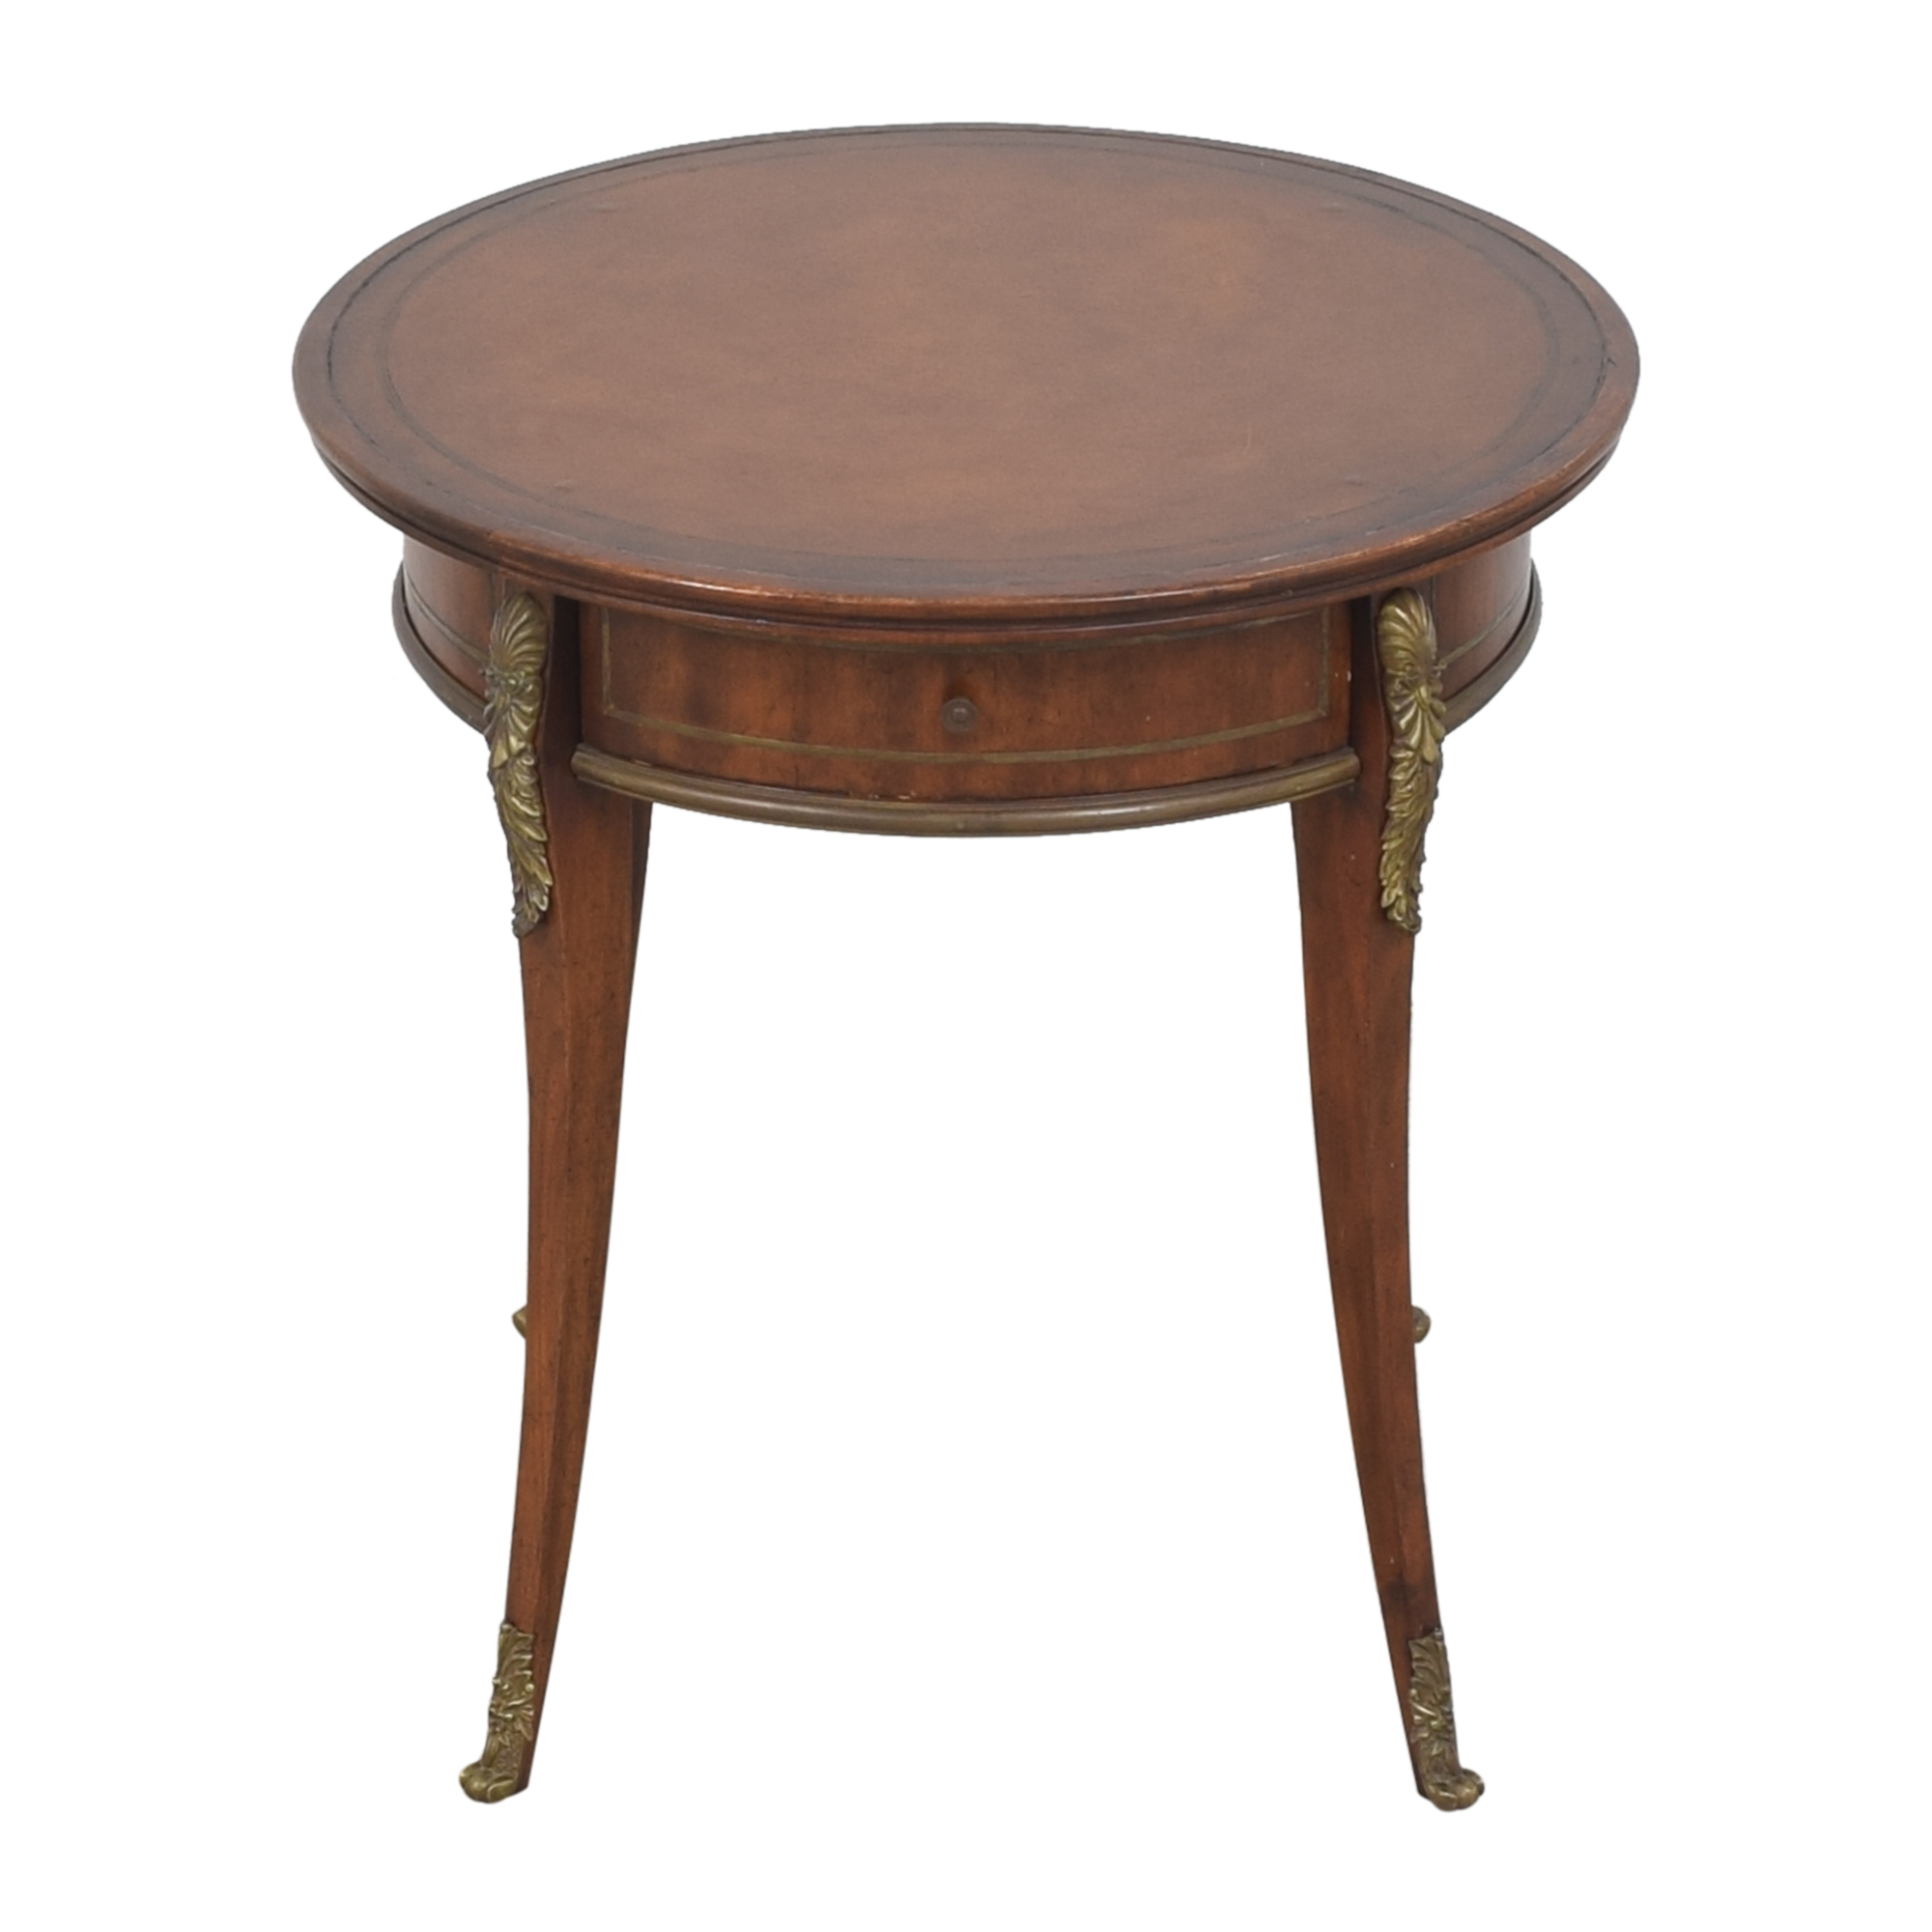 buy John-Richard John-Richard European Crossroads Single Drawer Side Table online